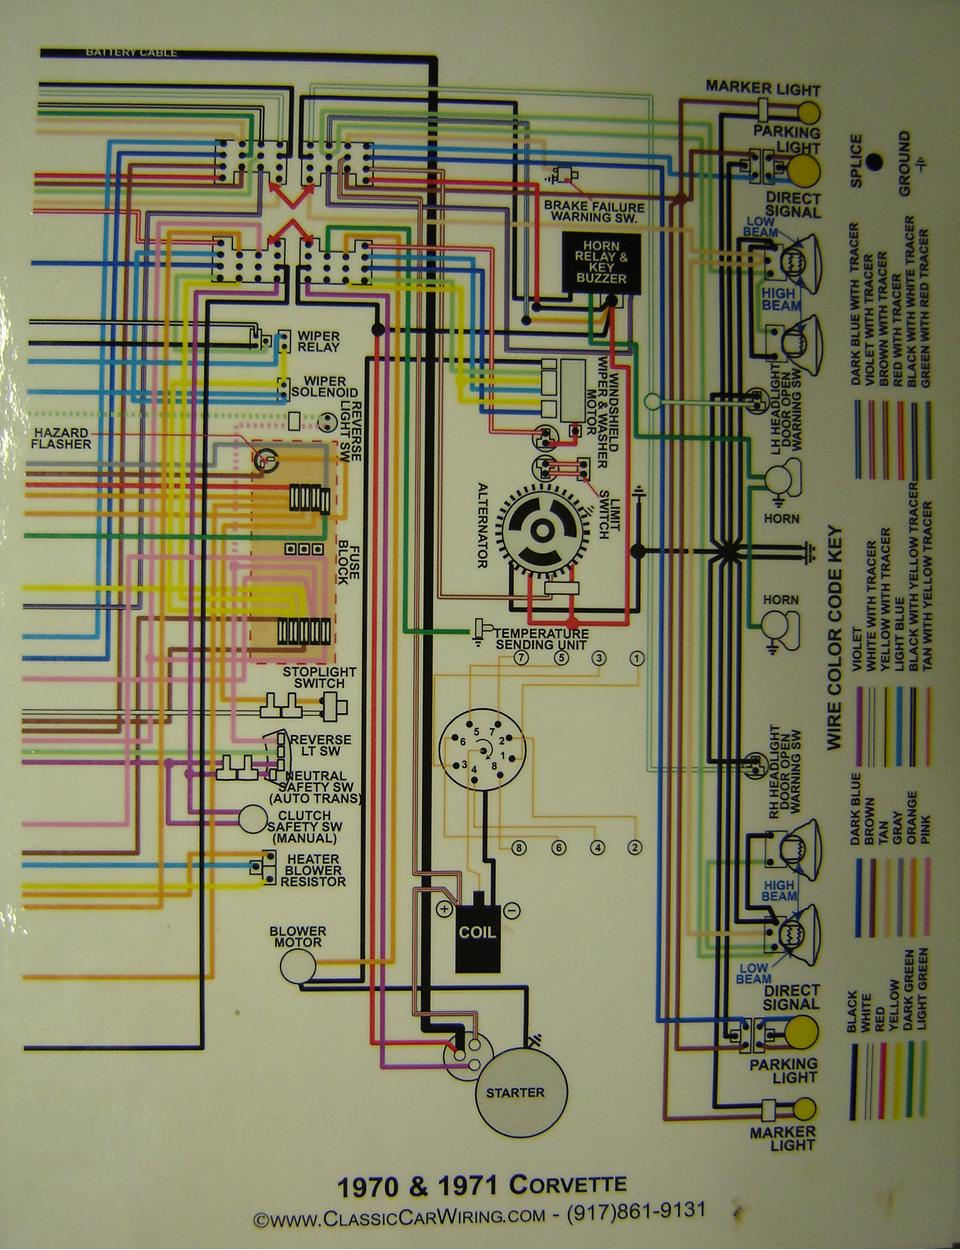 chevy diagrams on Engine Wiring Harness 1960 Corvette Wiring Harness for 1970 71 corvette color wiring diagram 2 drawing b